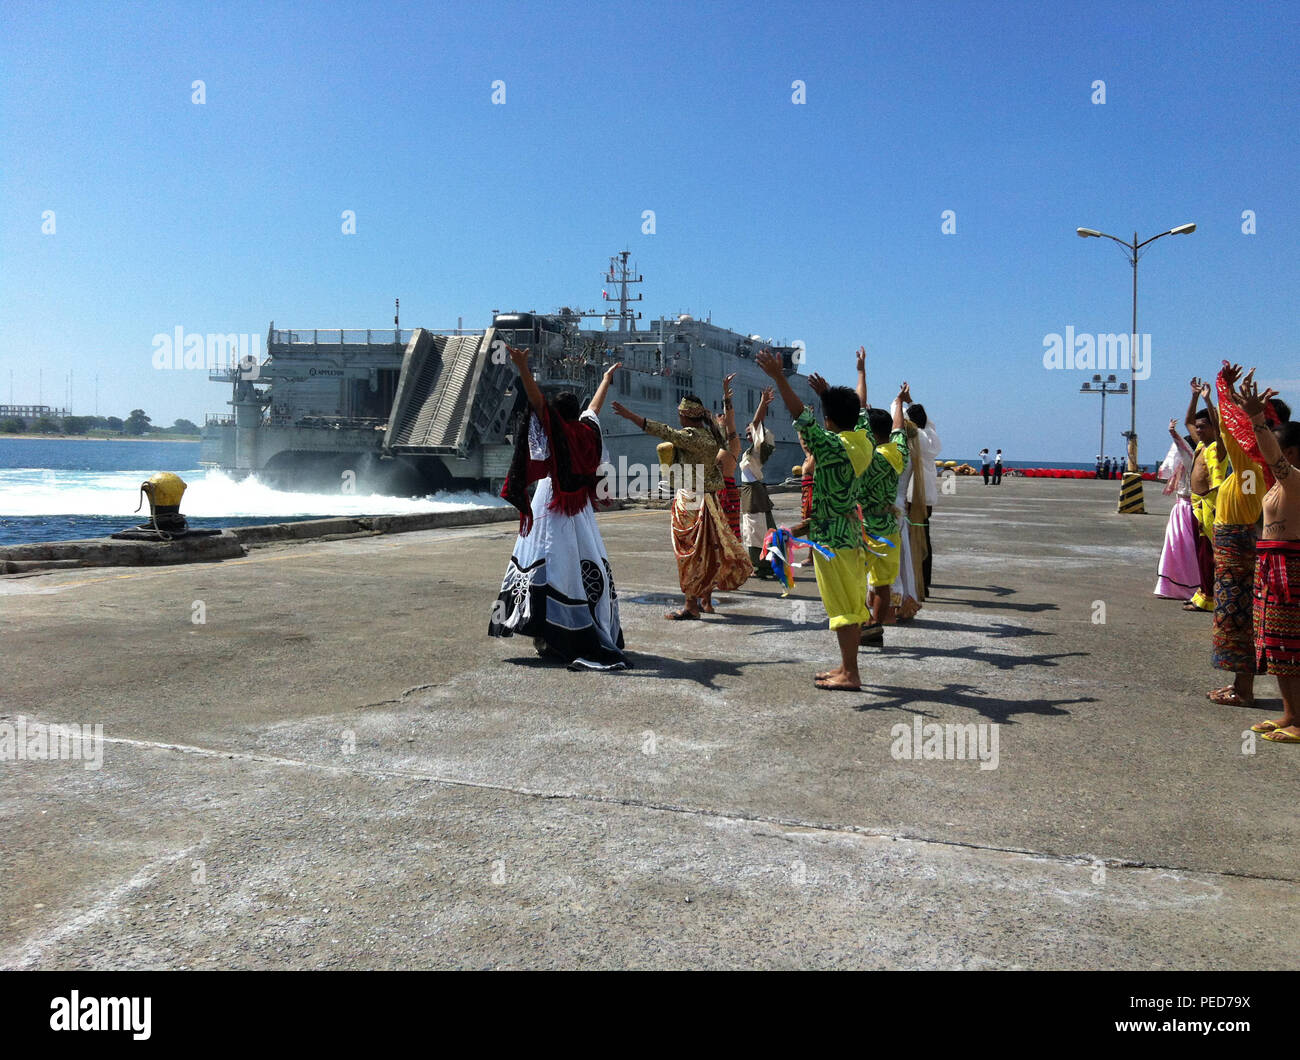 150804-N-ZZ999-008 SAN FERNANDO CITY, Philippines (Aug. 4, 2015) – Traditional Filipino dancers perform as the Military Sealift Command joint high speed vessel USNS Millinocket (JHSV 3) arrives in San Fernando City, Aug. 4. Millinocket is in the Philippines for the fourth stop of Pacific Partnership 2015. Millinocket and embarked Task Force Forager are serving as the secondary platform for Pacific Partnership, led by an expeditionary command element from the Navy's 30th Naval Construction Regiment (30 NCR) from Port Hueneme, Calif. Now in its 10th iteration, Pacific Partnership is the largest  - Stock Image